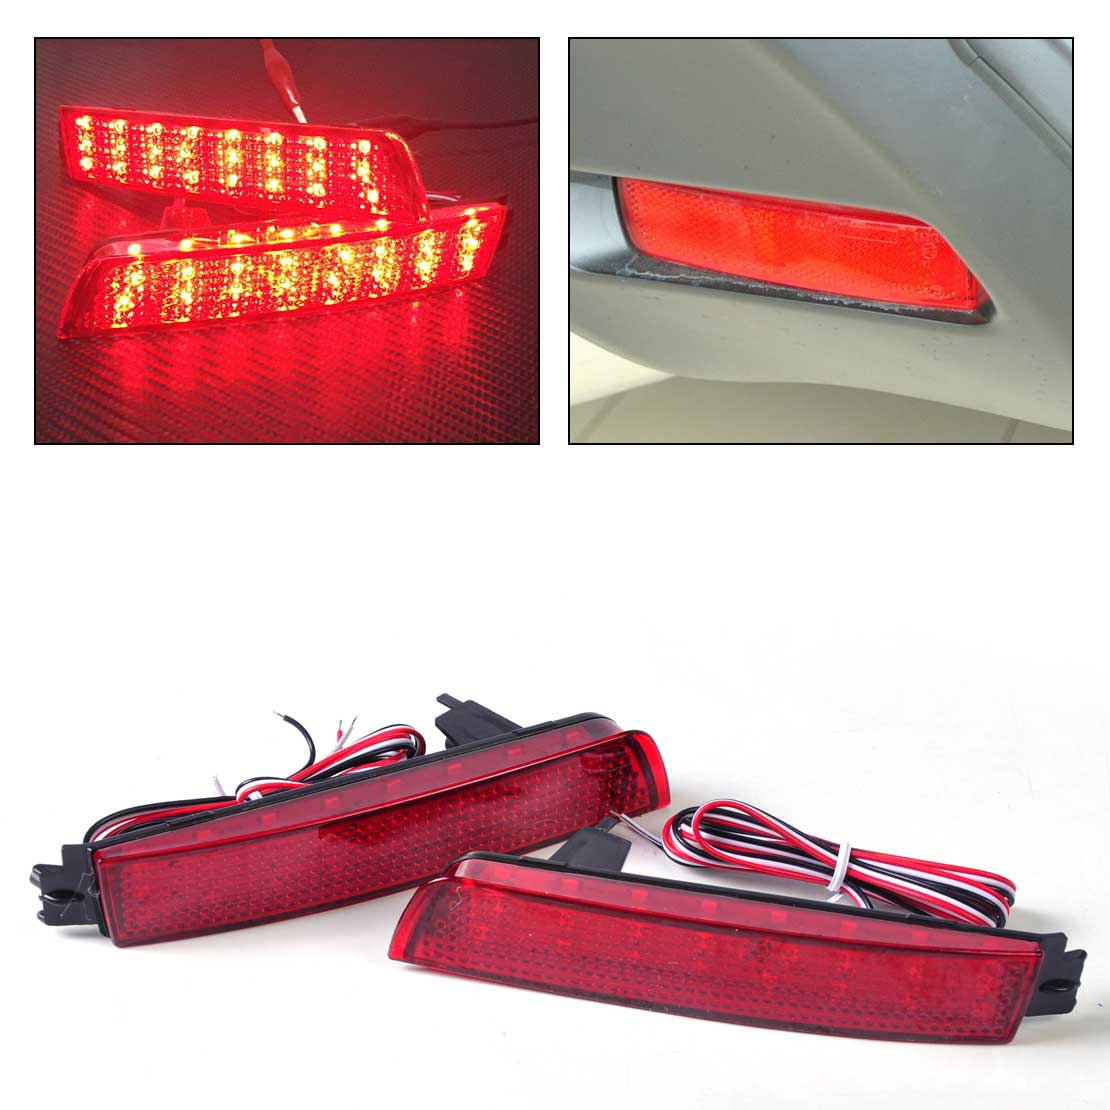 2x Red Lens LED Bumper Reflector Rear Tail Brake Light 265605C000 for Nissan Juke Quest Murano Sentra Infiniti FX35 FX37 светильник 3d light fx авто red